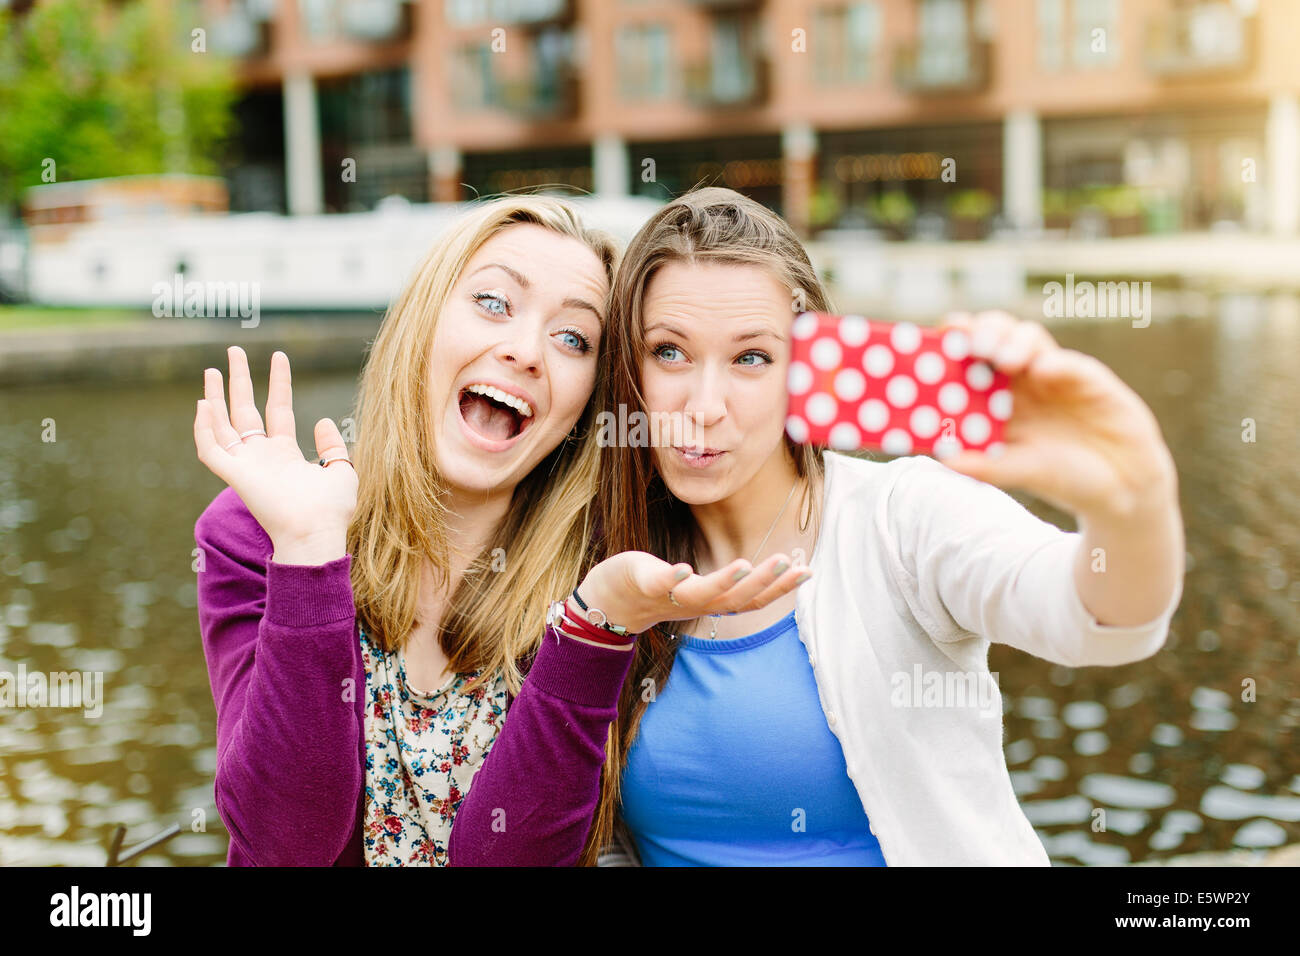 Friends taking selfie by canal - Stock Image